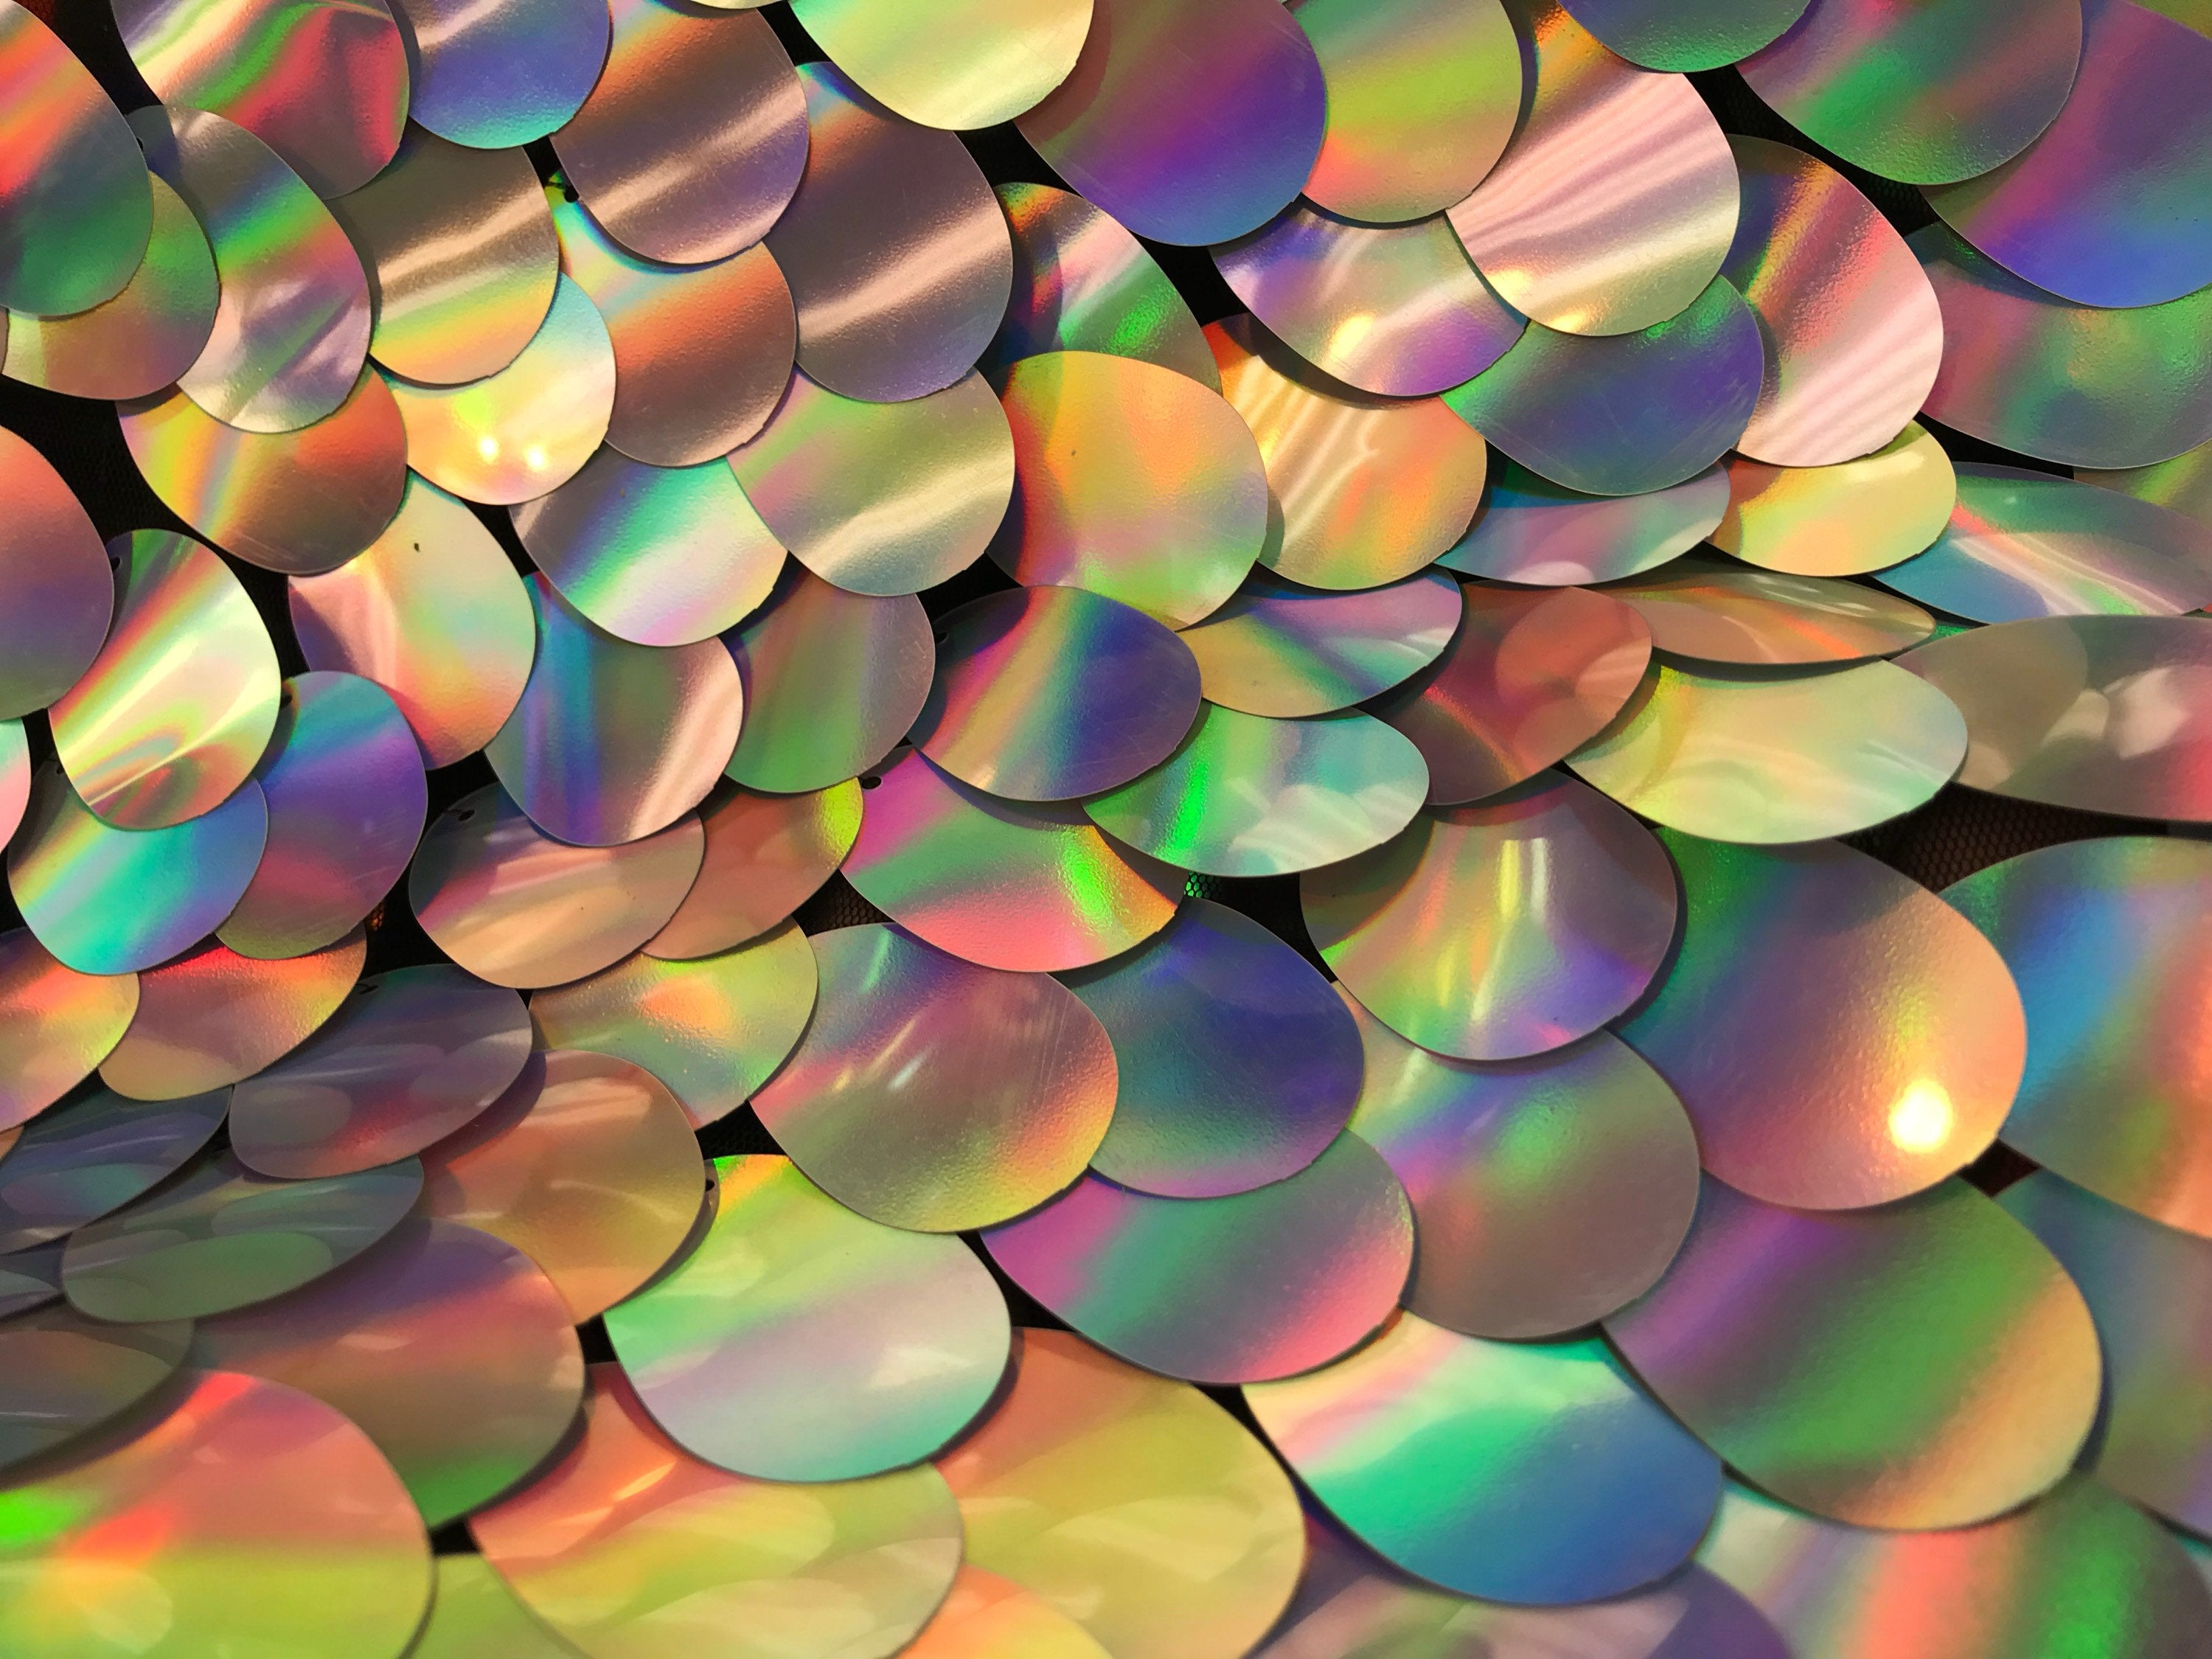 Sequins Hologram Fabric - Multi-Color Teardrops Oval 58 Inch Mesh Dress Top Sold By The Yard - KINGDOM OF FABRICS